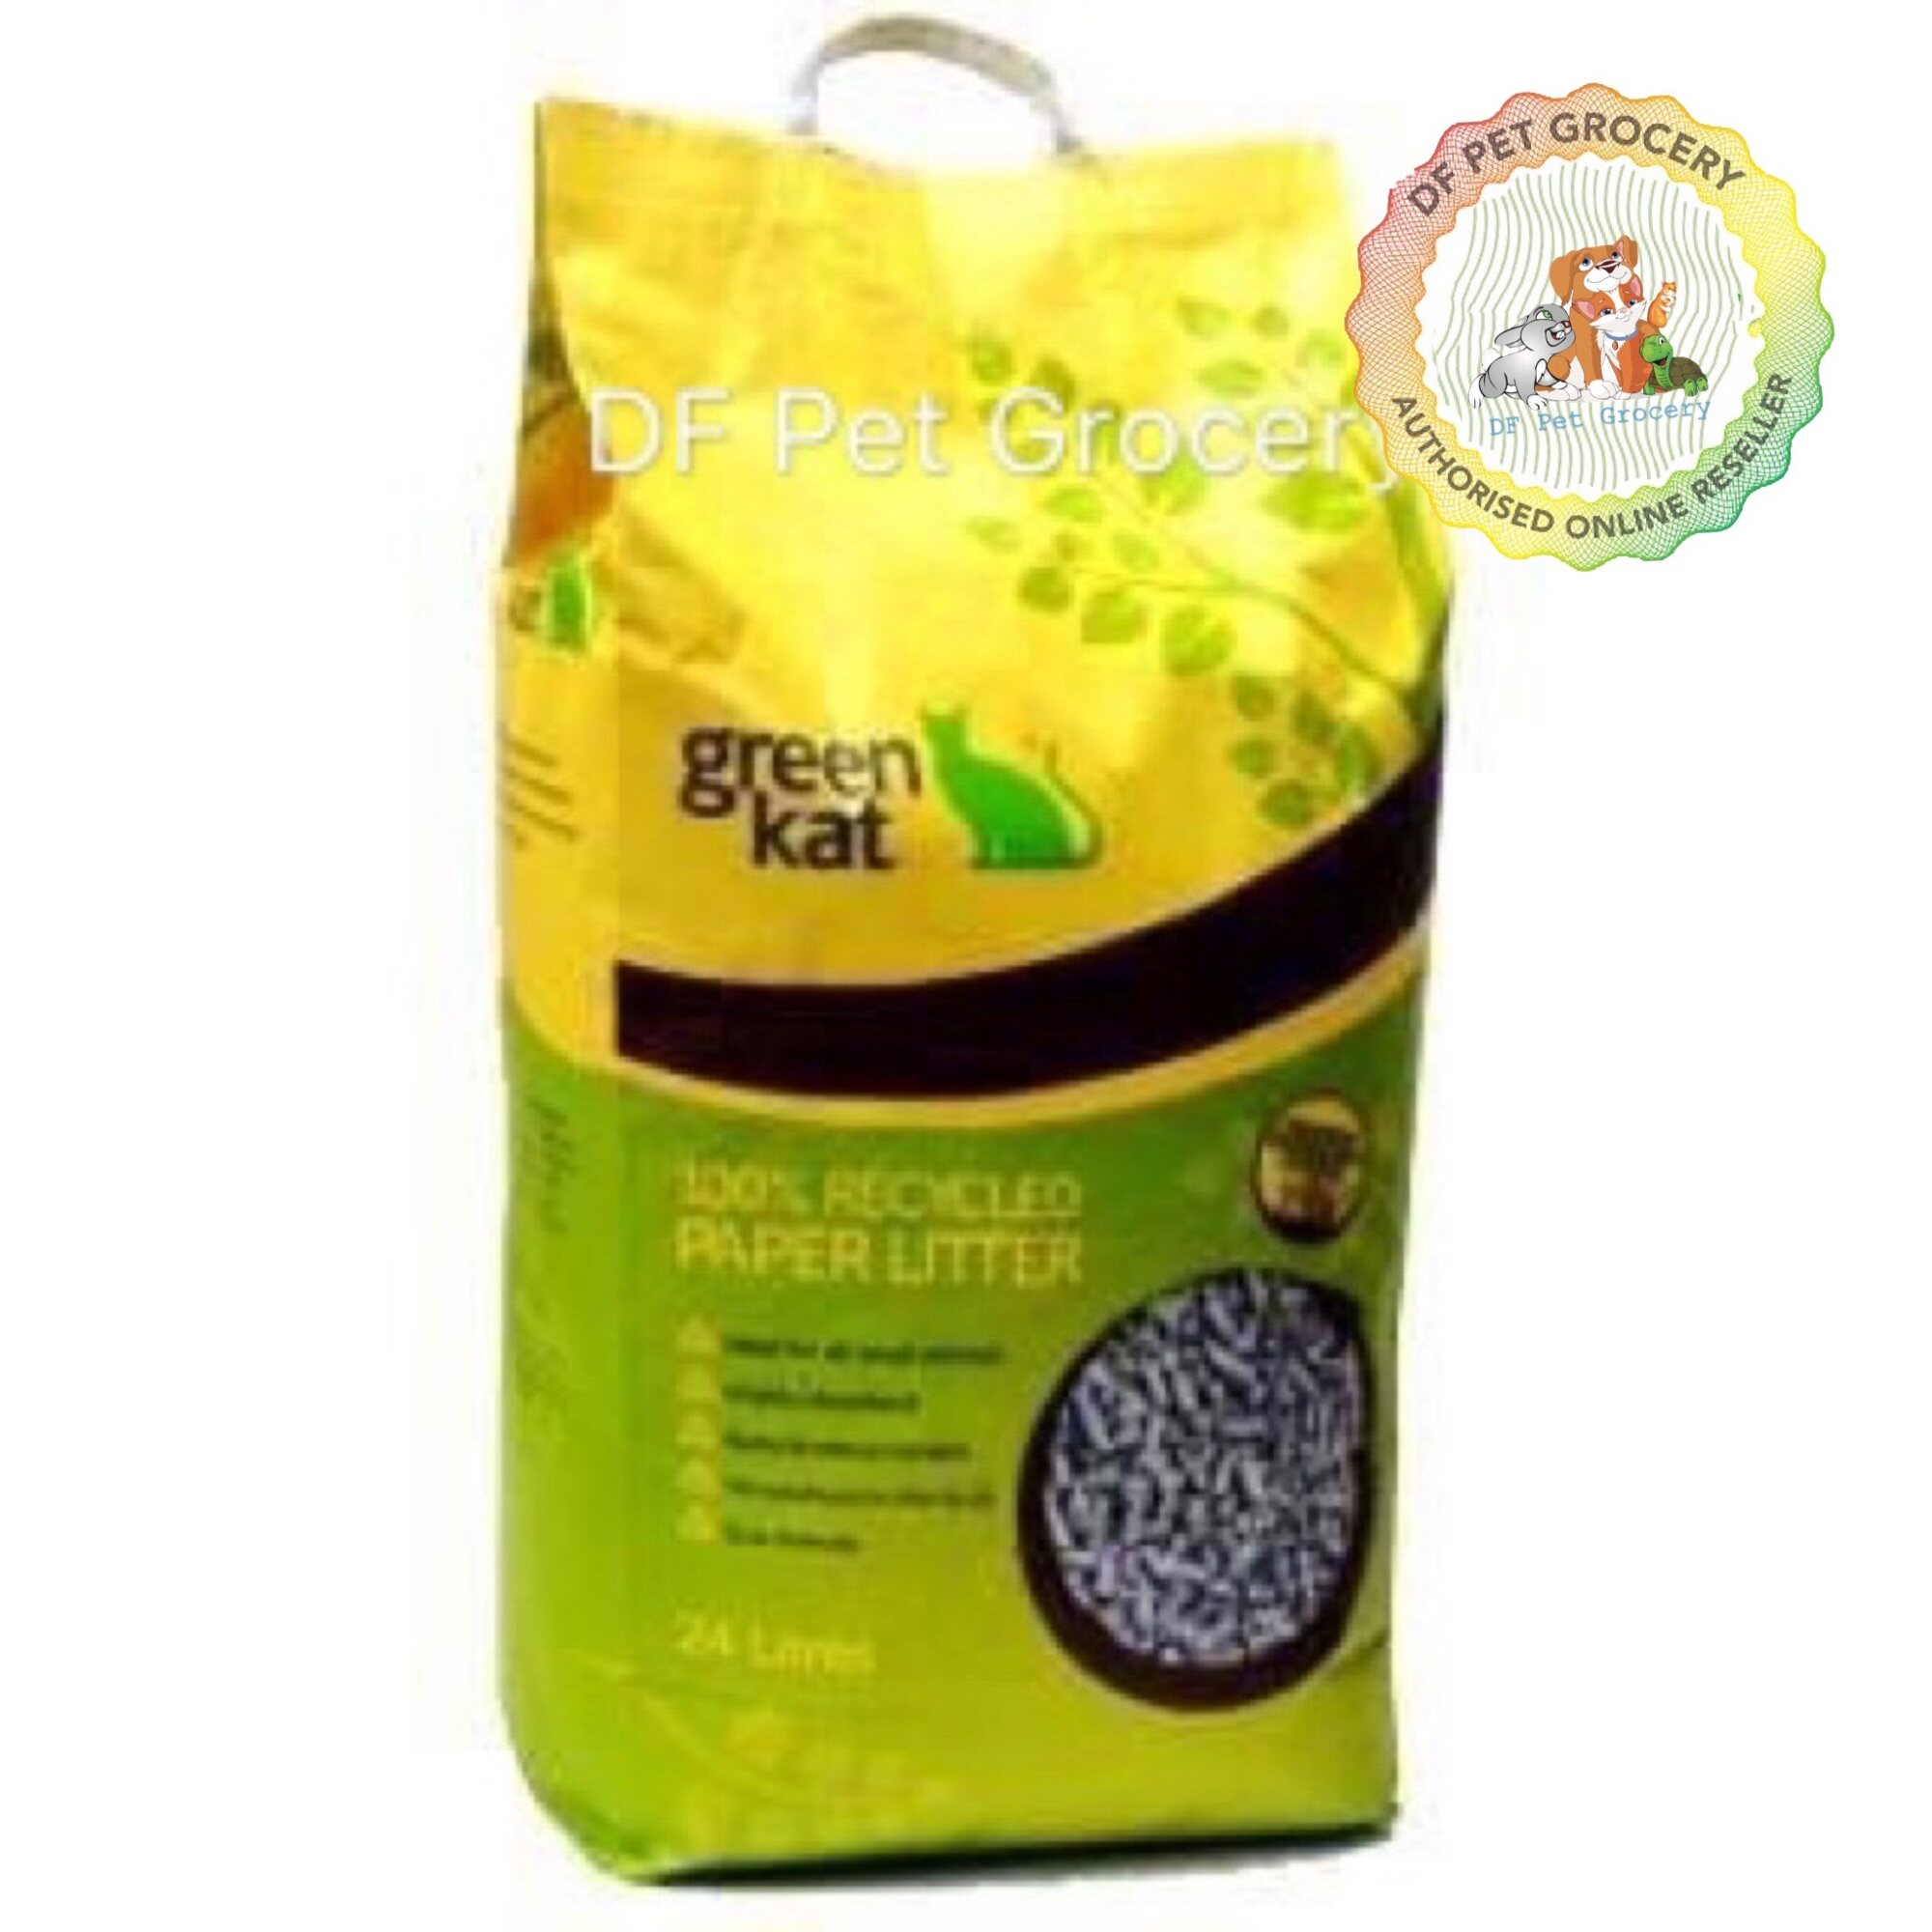 GREEN KAT 100% RECYCLED CAT LITTER - 24 Liters